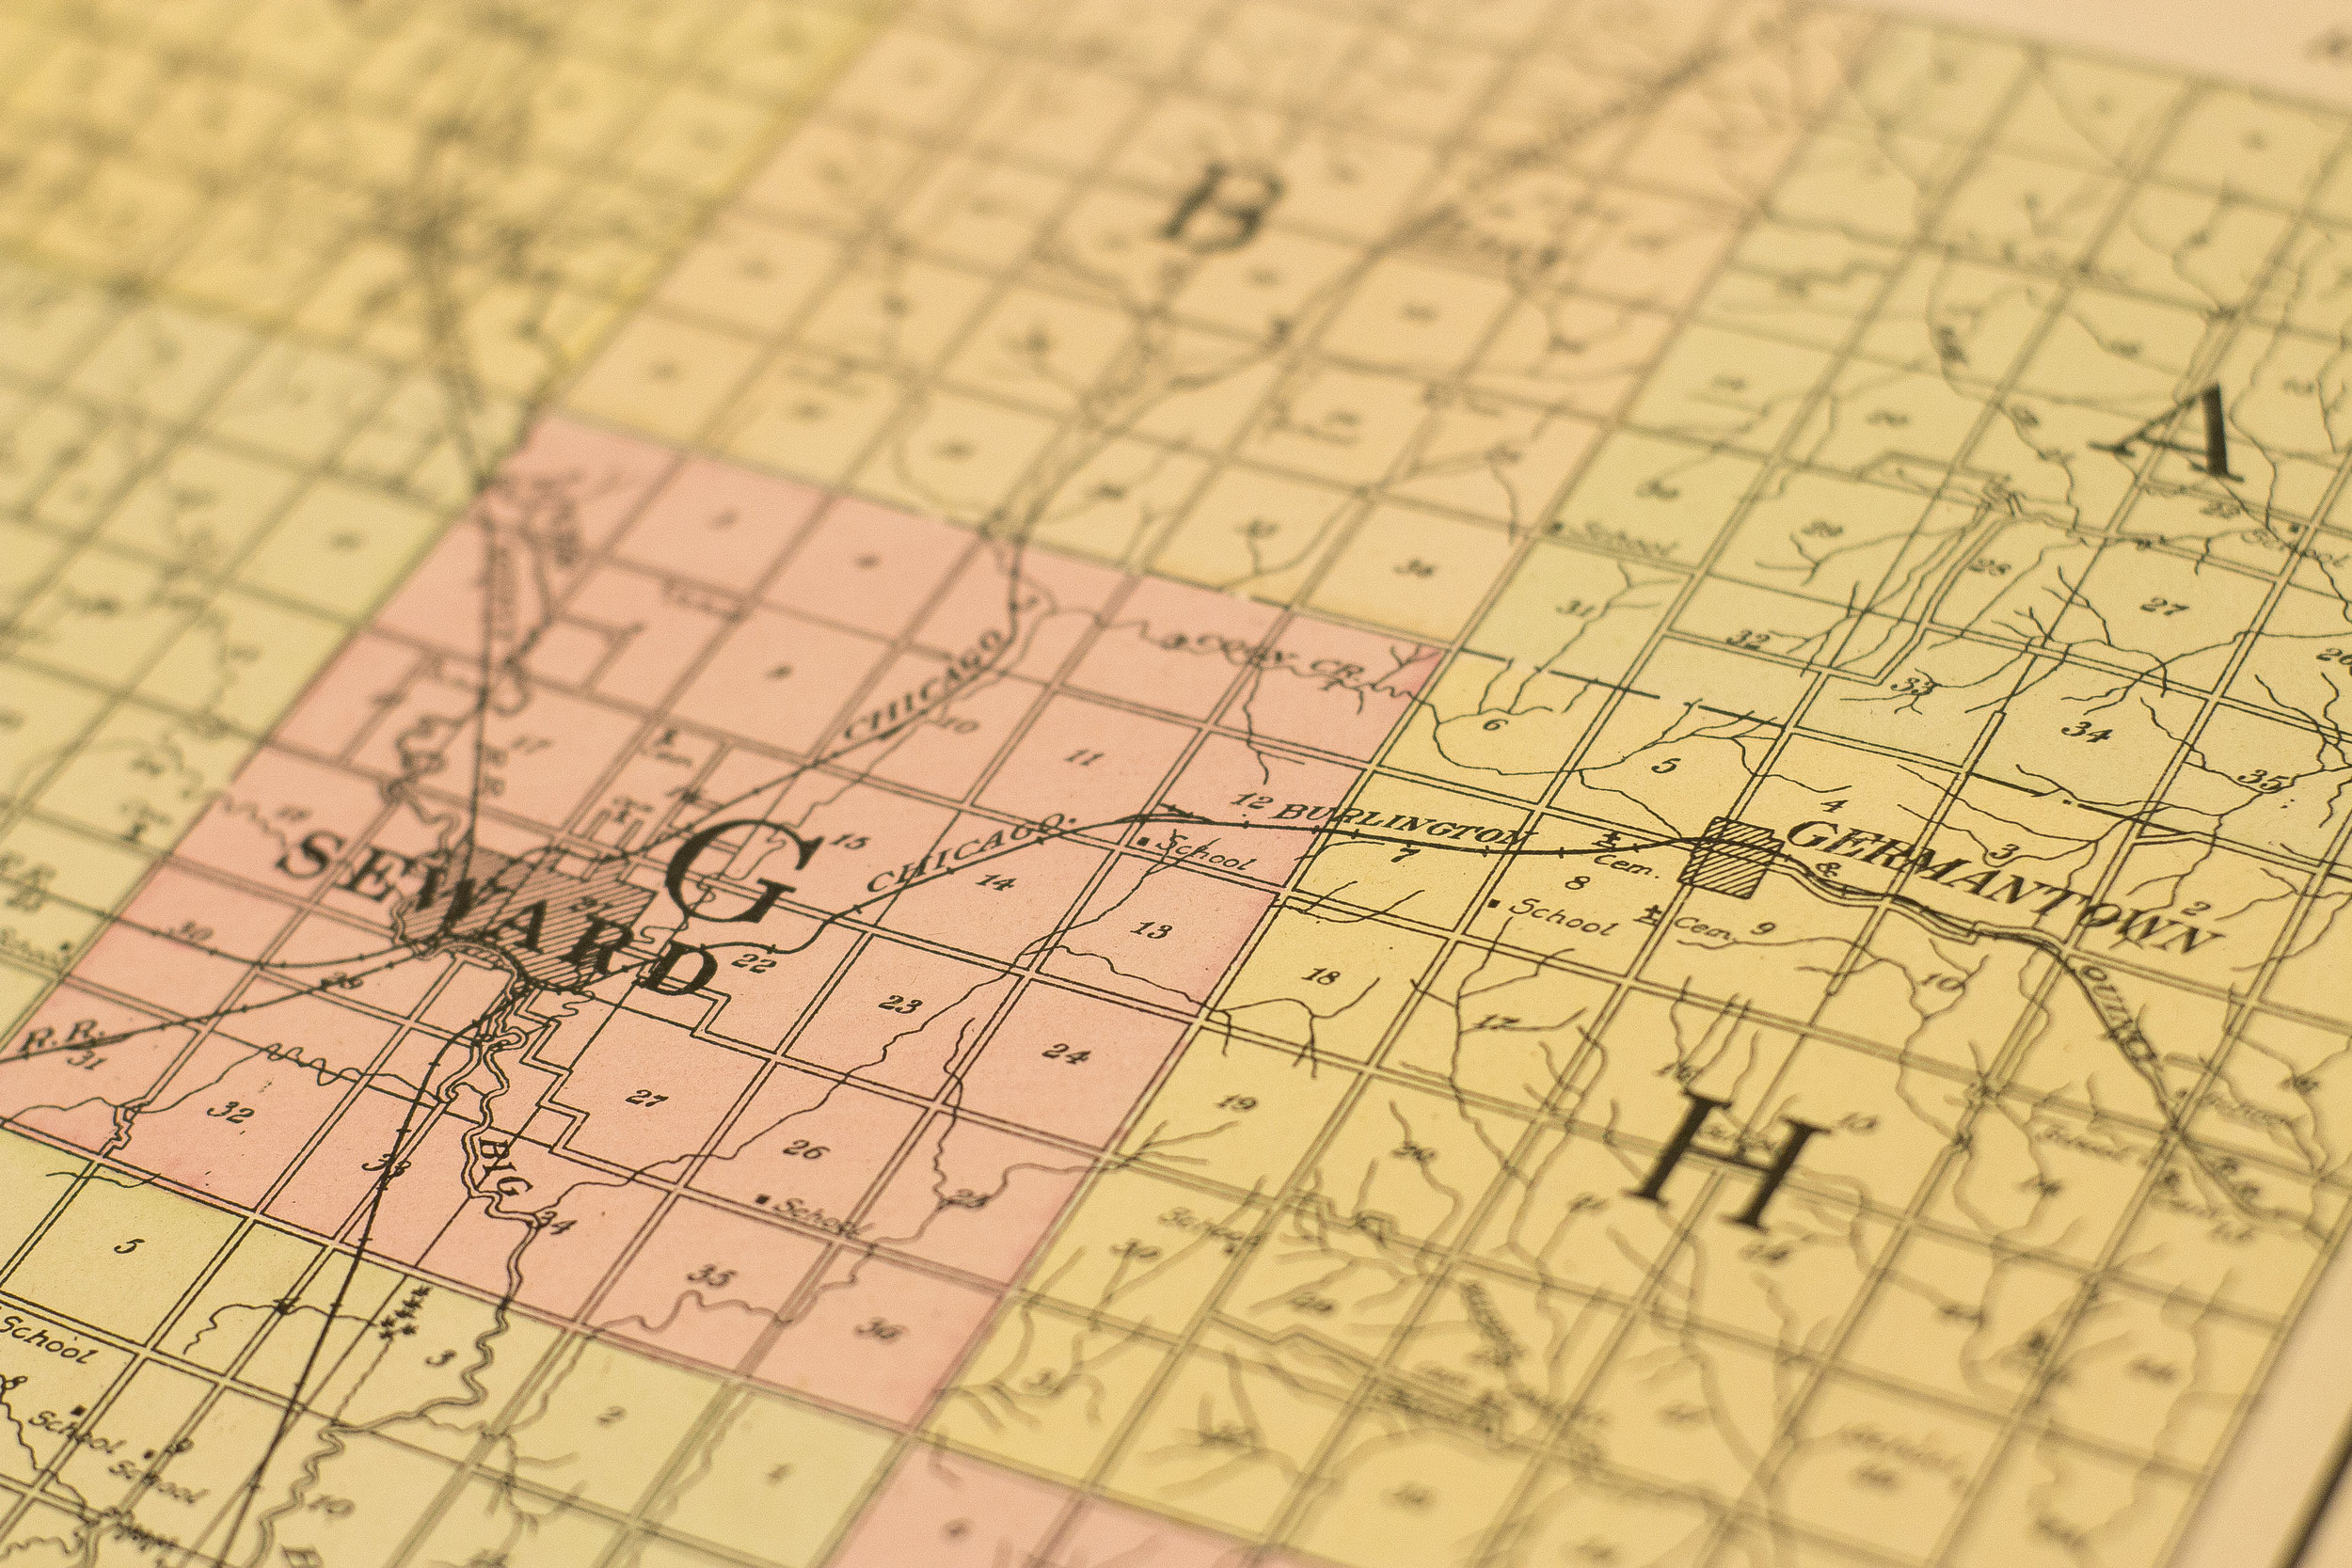 - A map of Seward County, Nebraska from 1908 shows rail lines across the county, including the now nonexistent line from Garland (formerly Germantown) to Seward. Photographed at the Seward County Historical Society on July 3, 2017.